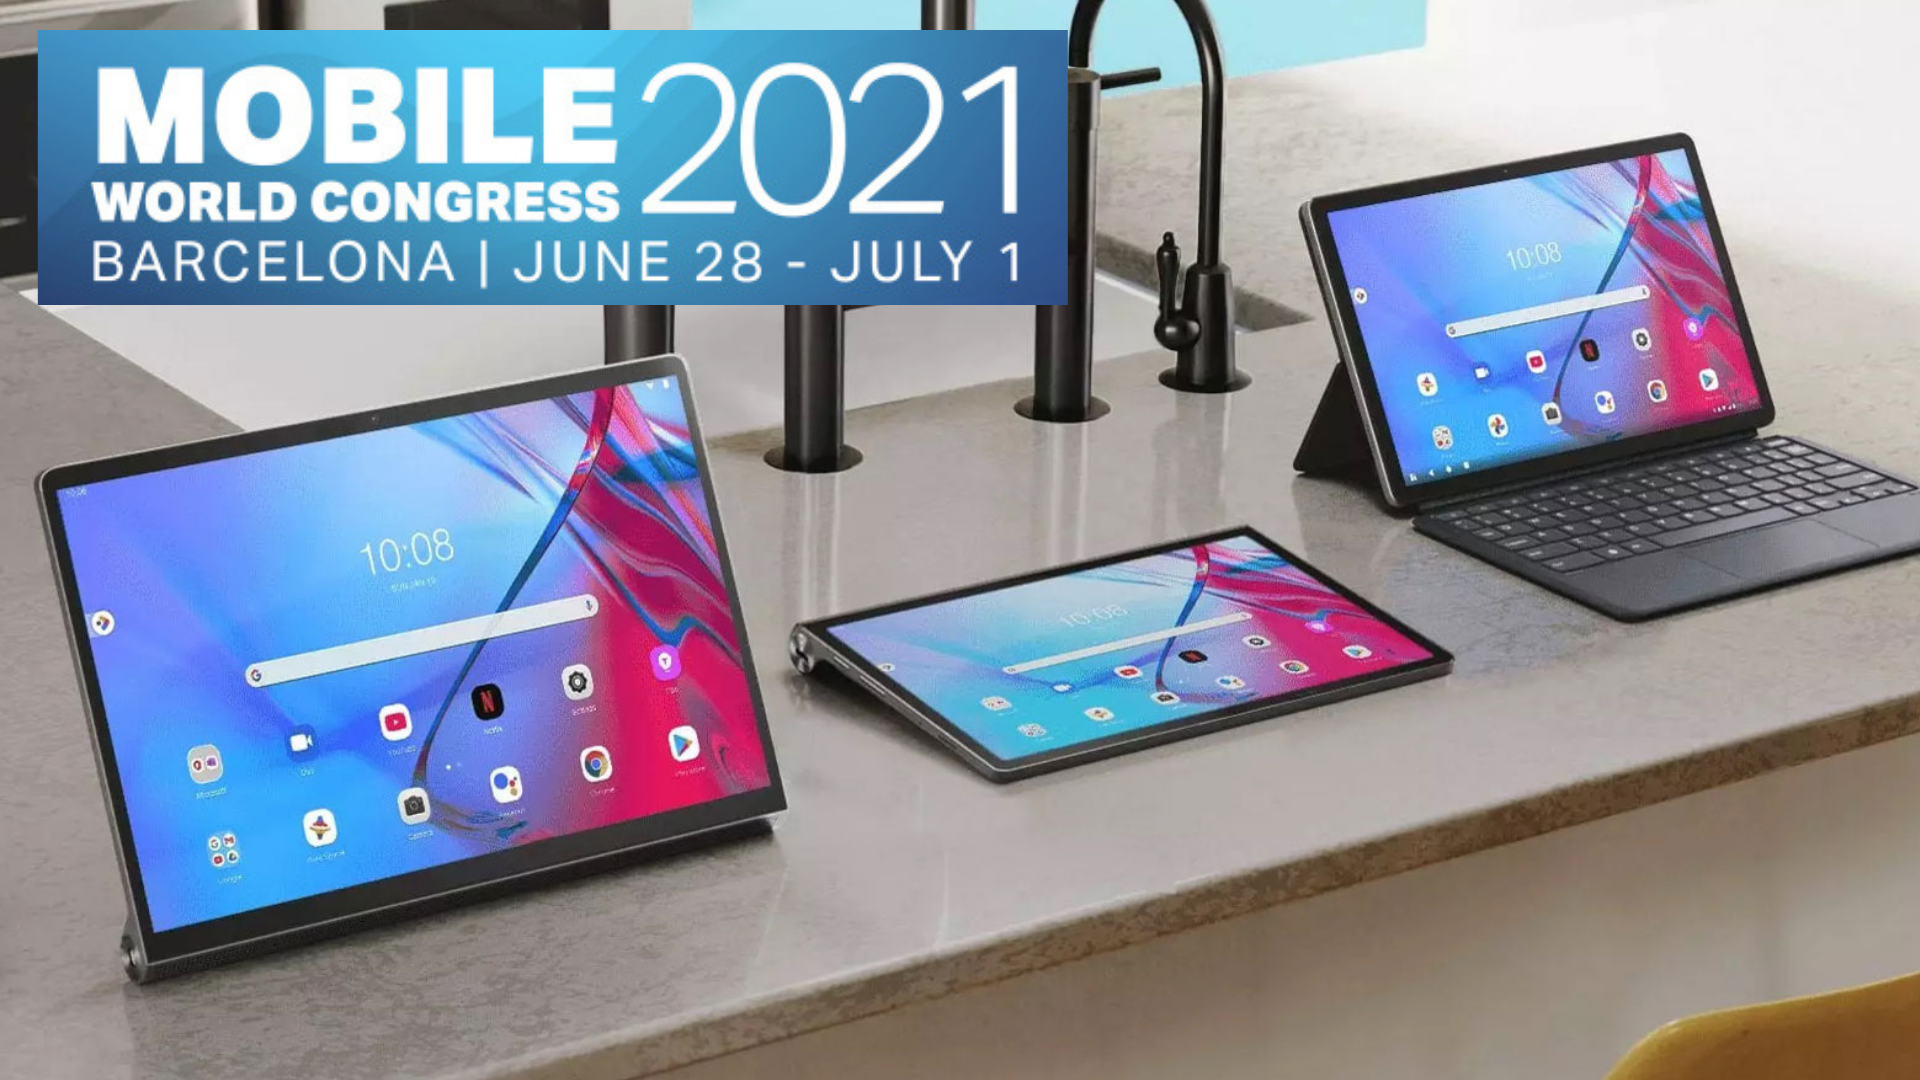 Lenovo launches Smart clock 2, Yoga tab 13 & other tablets in MWC 2021